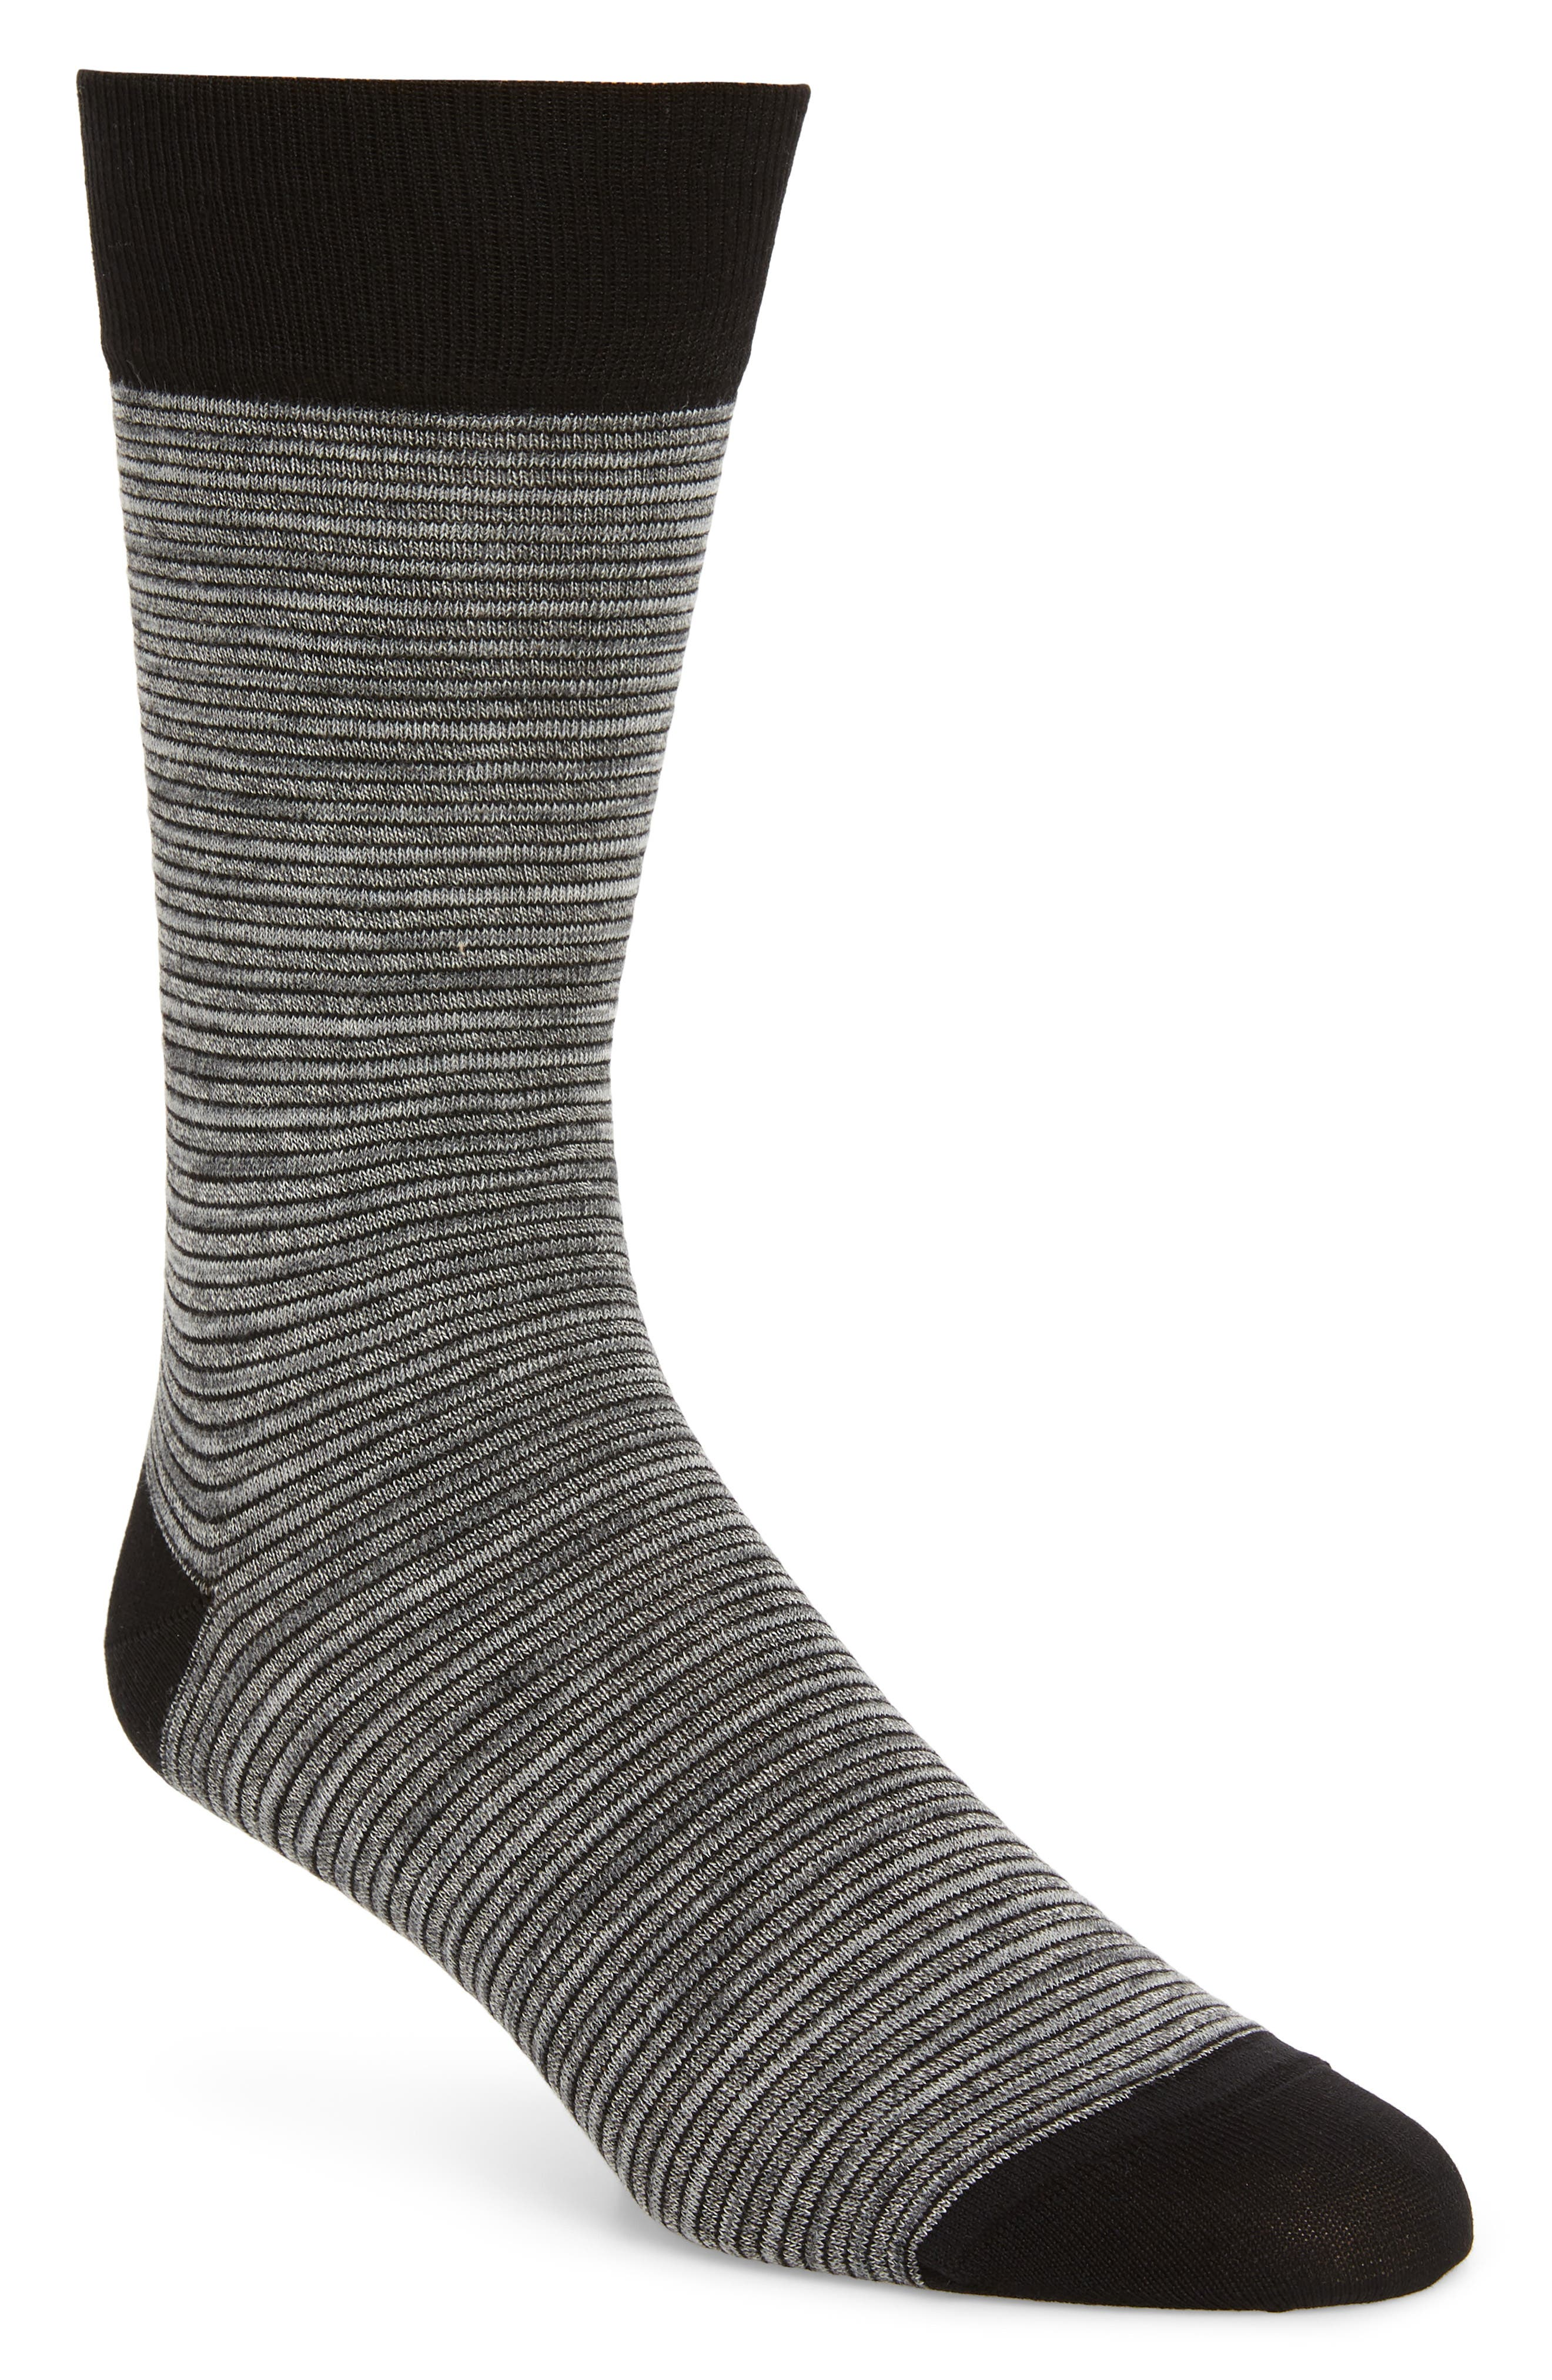 Stripe Socks,                         Main,                         color, 030